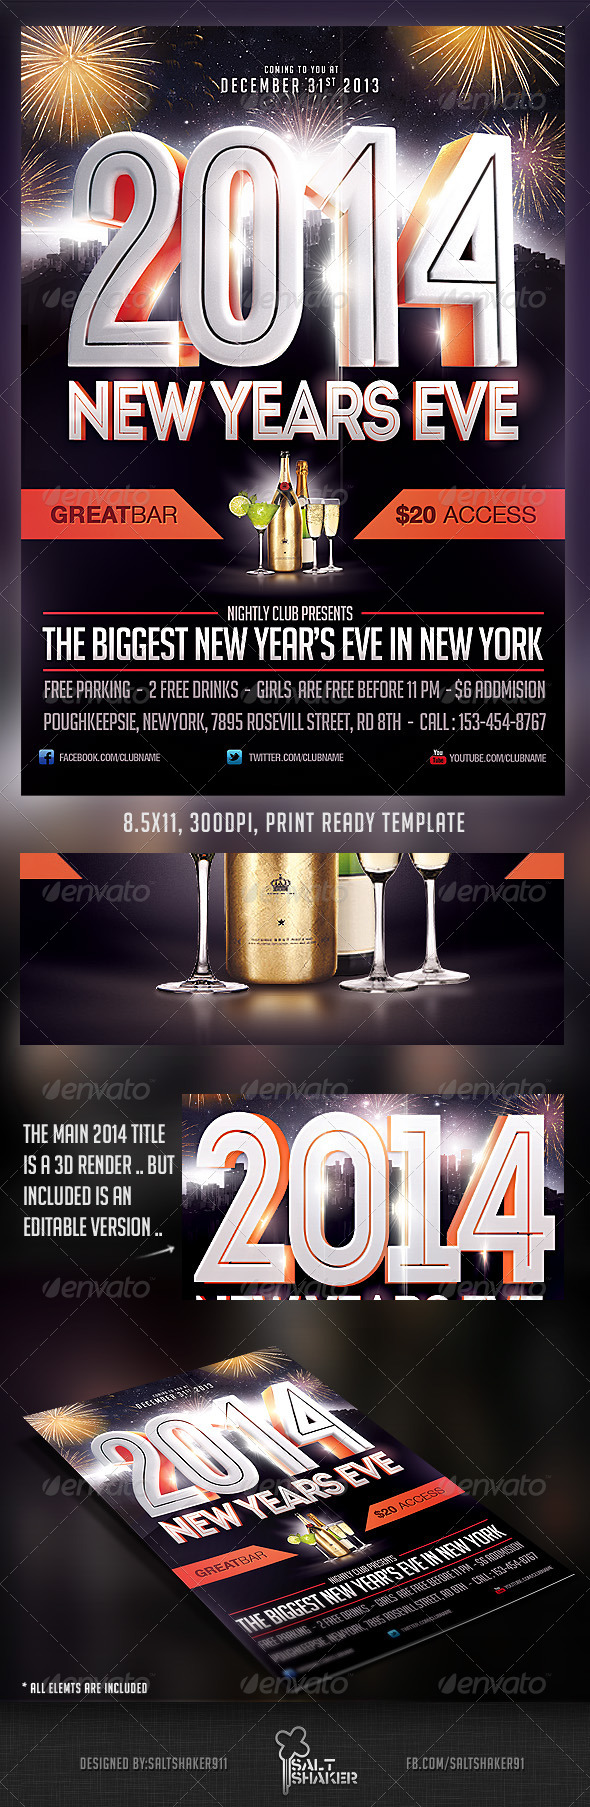 2014 New Years Eve Flyer Template